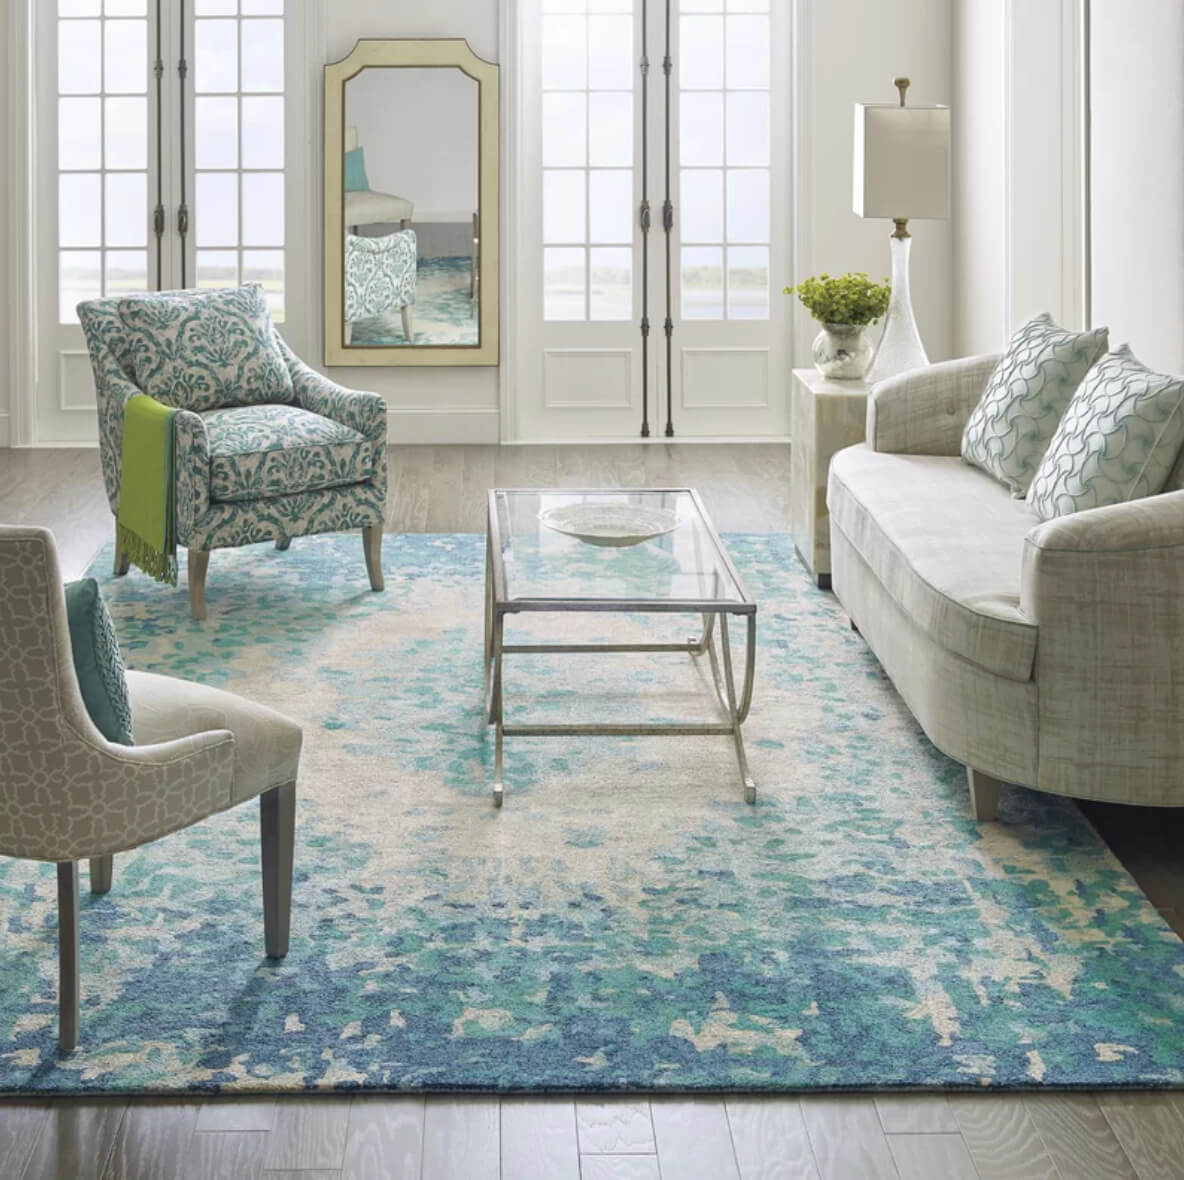 The Looking Glass Rug Adds Romance To A Living Room With An Impressionistic  Floral Pattern. Image: Perigold